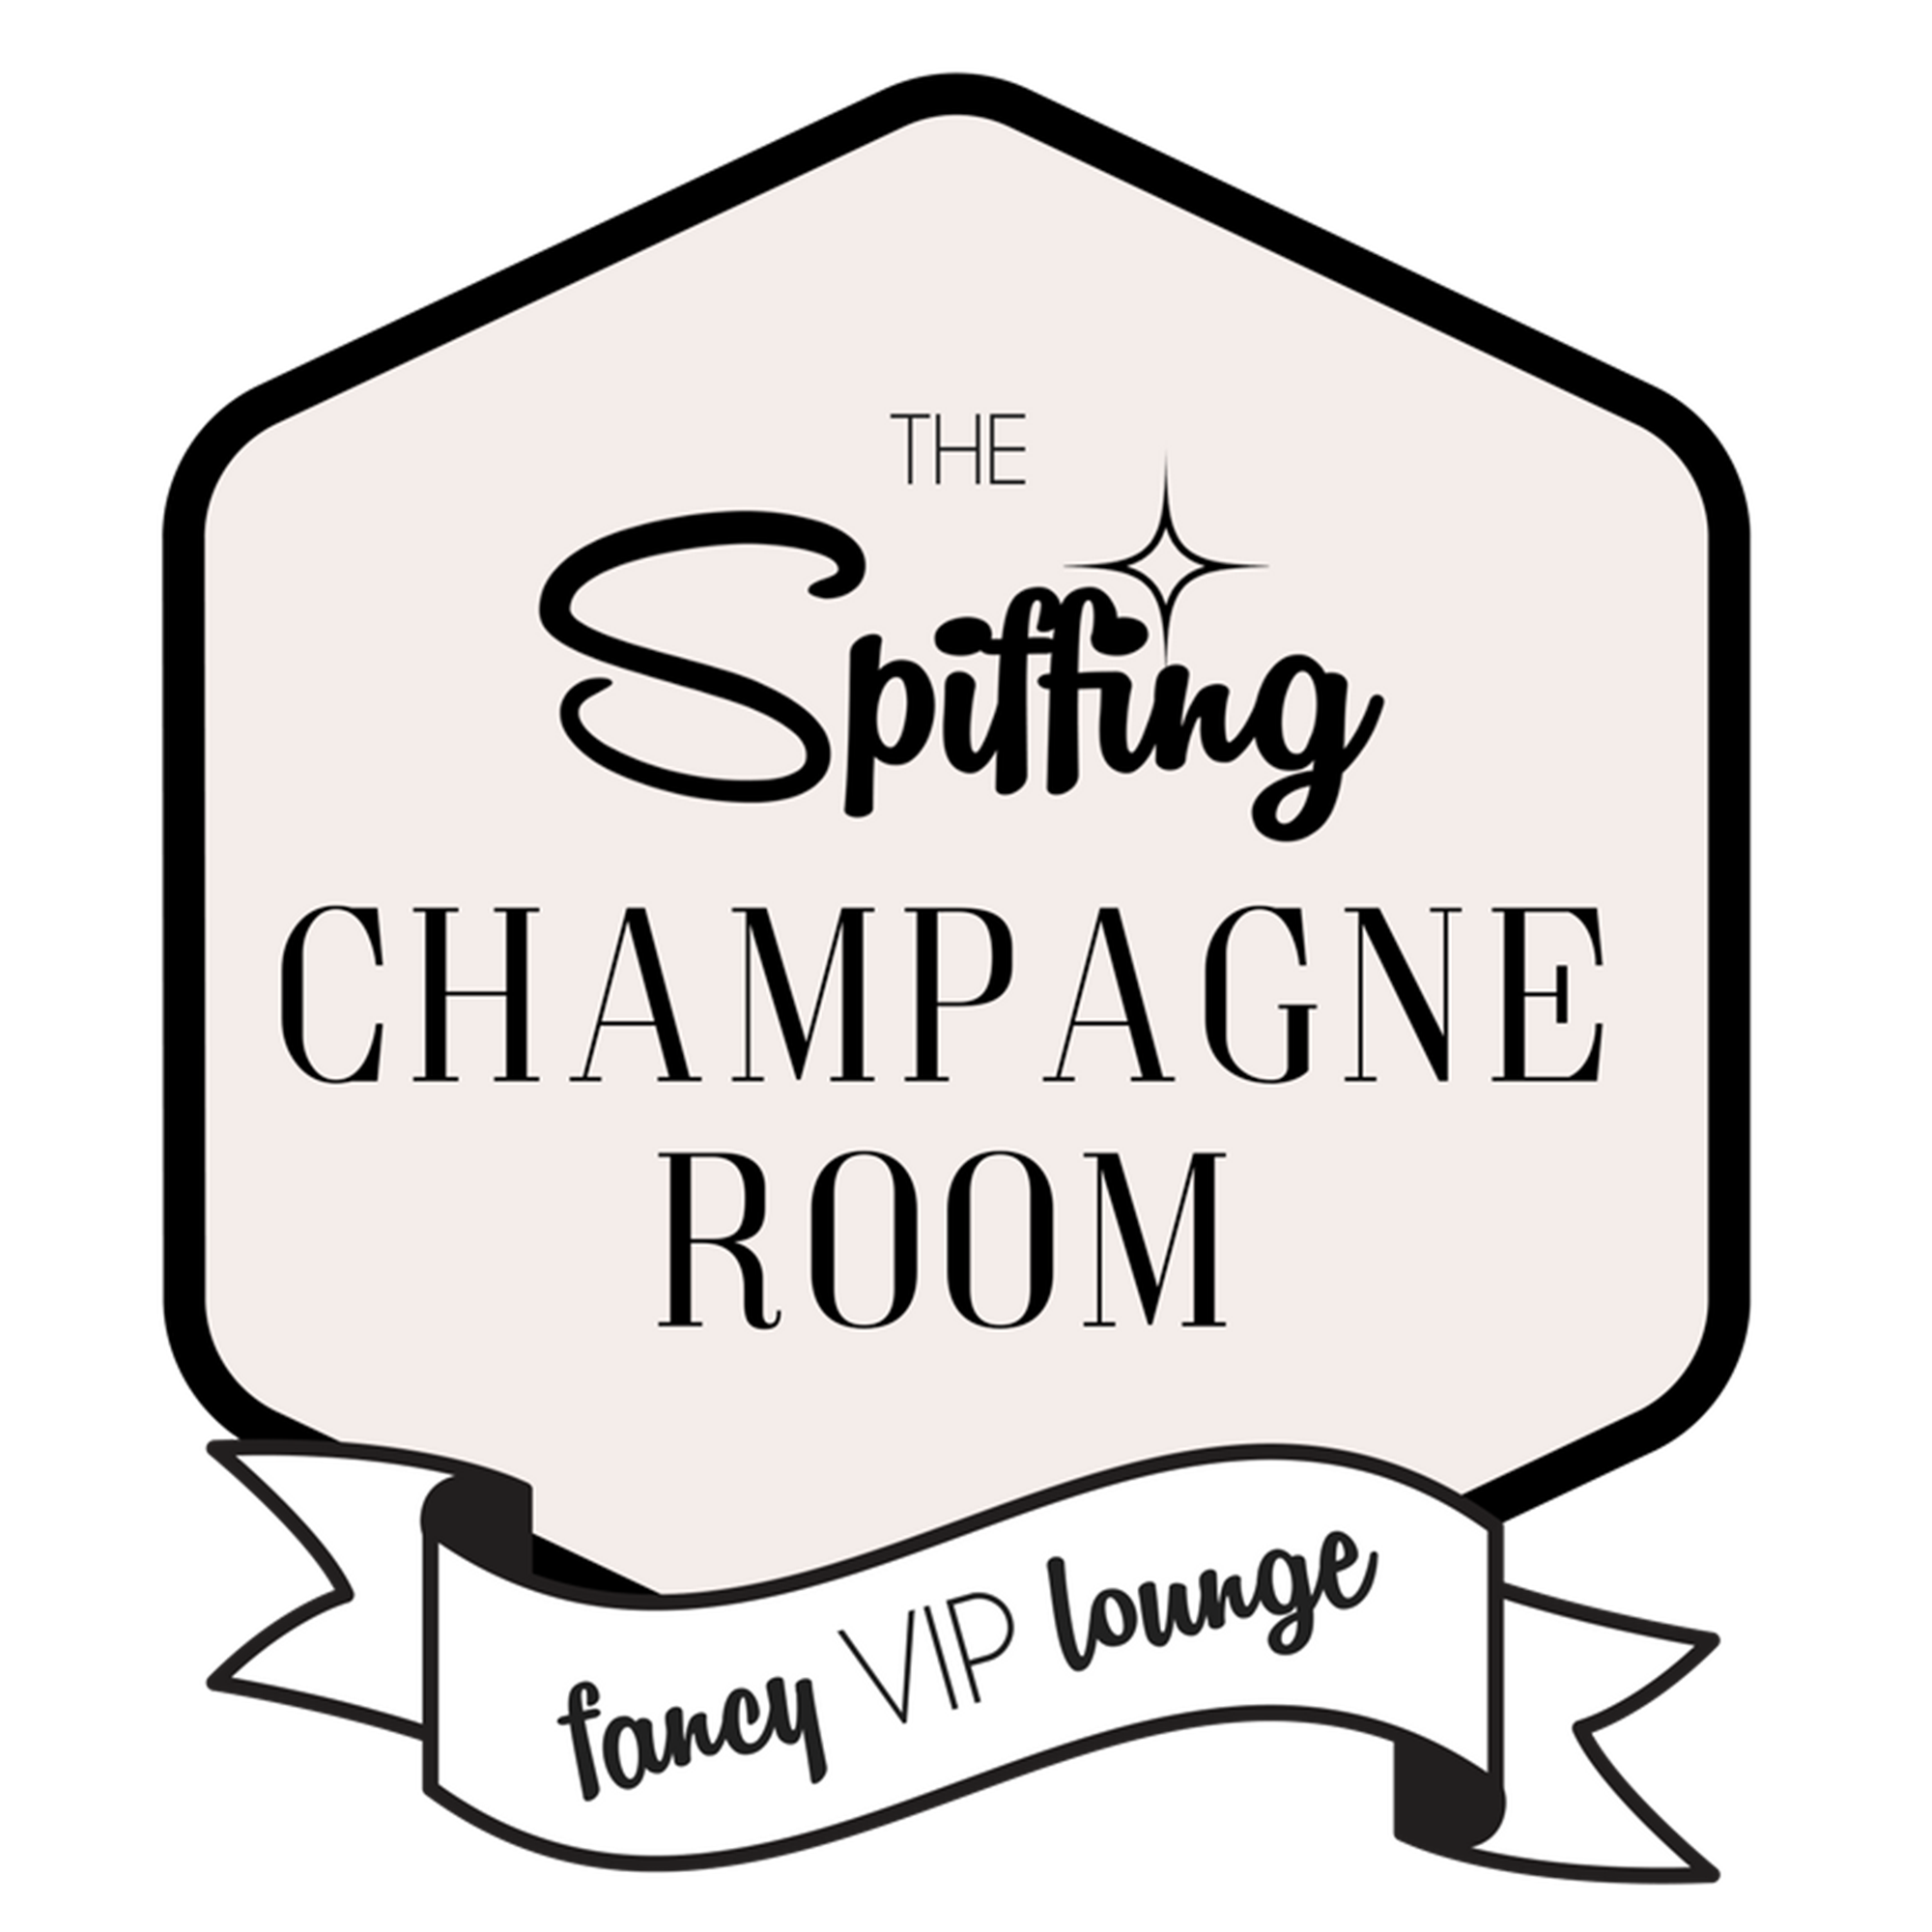 The Spiffing Champagne Room Fancy VIP Lounge